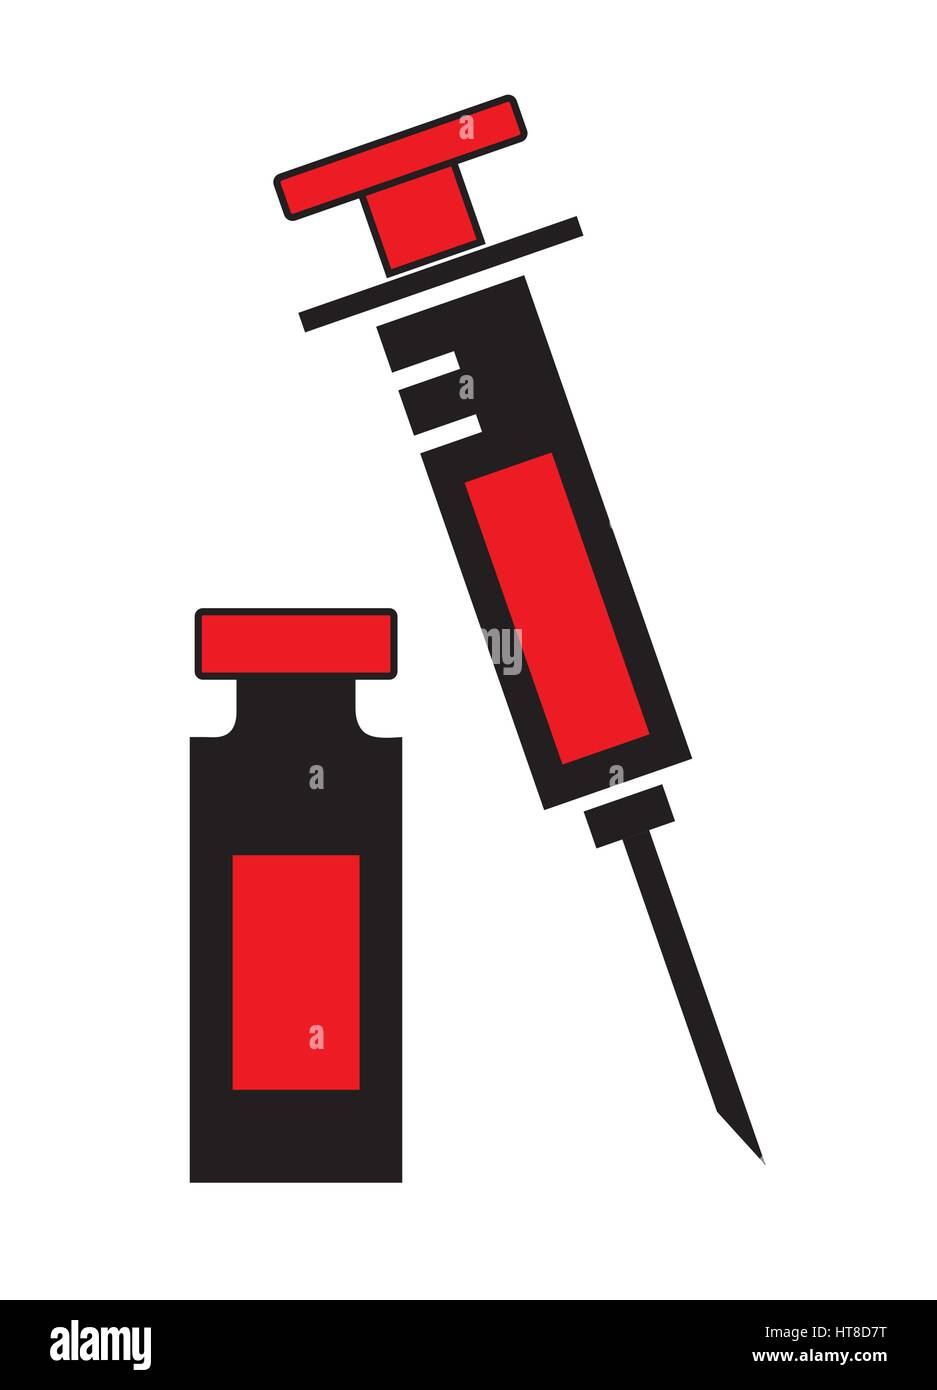 Syringe and vial bottle icon vector isolated in white background. Medical icons. - Stock Vector